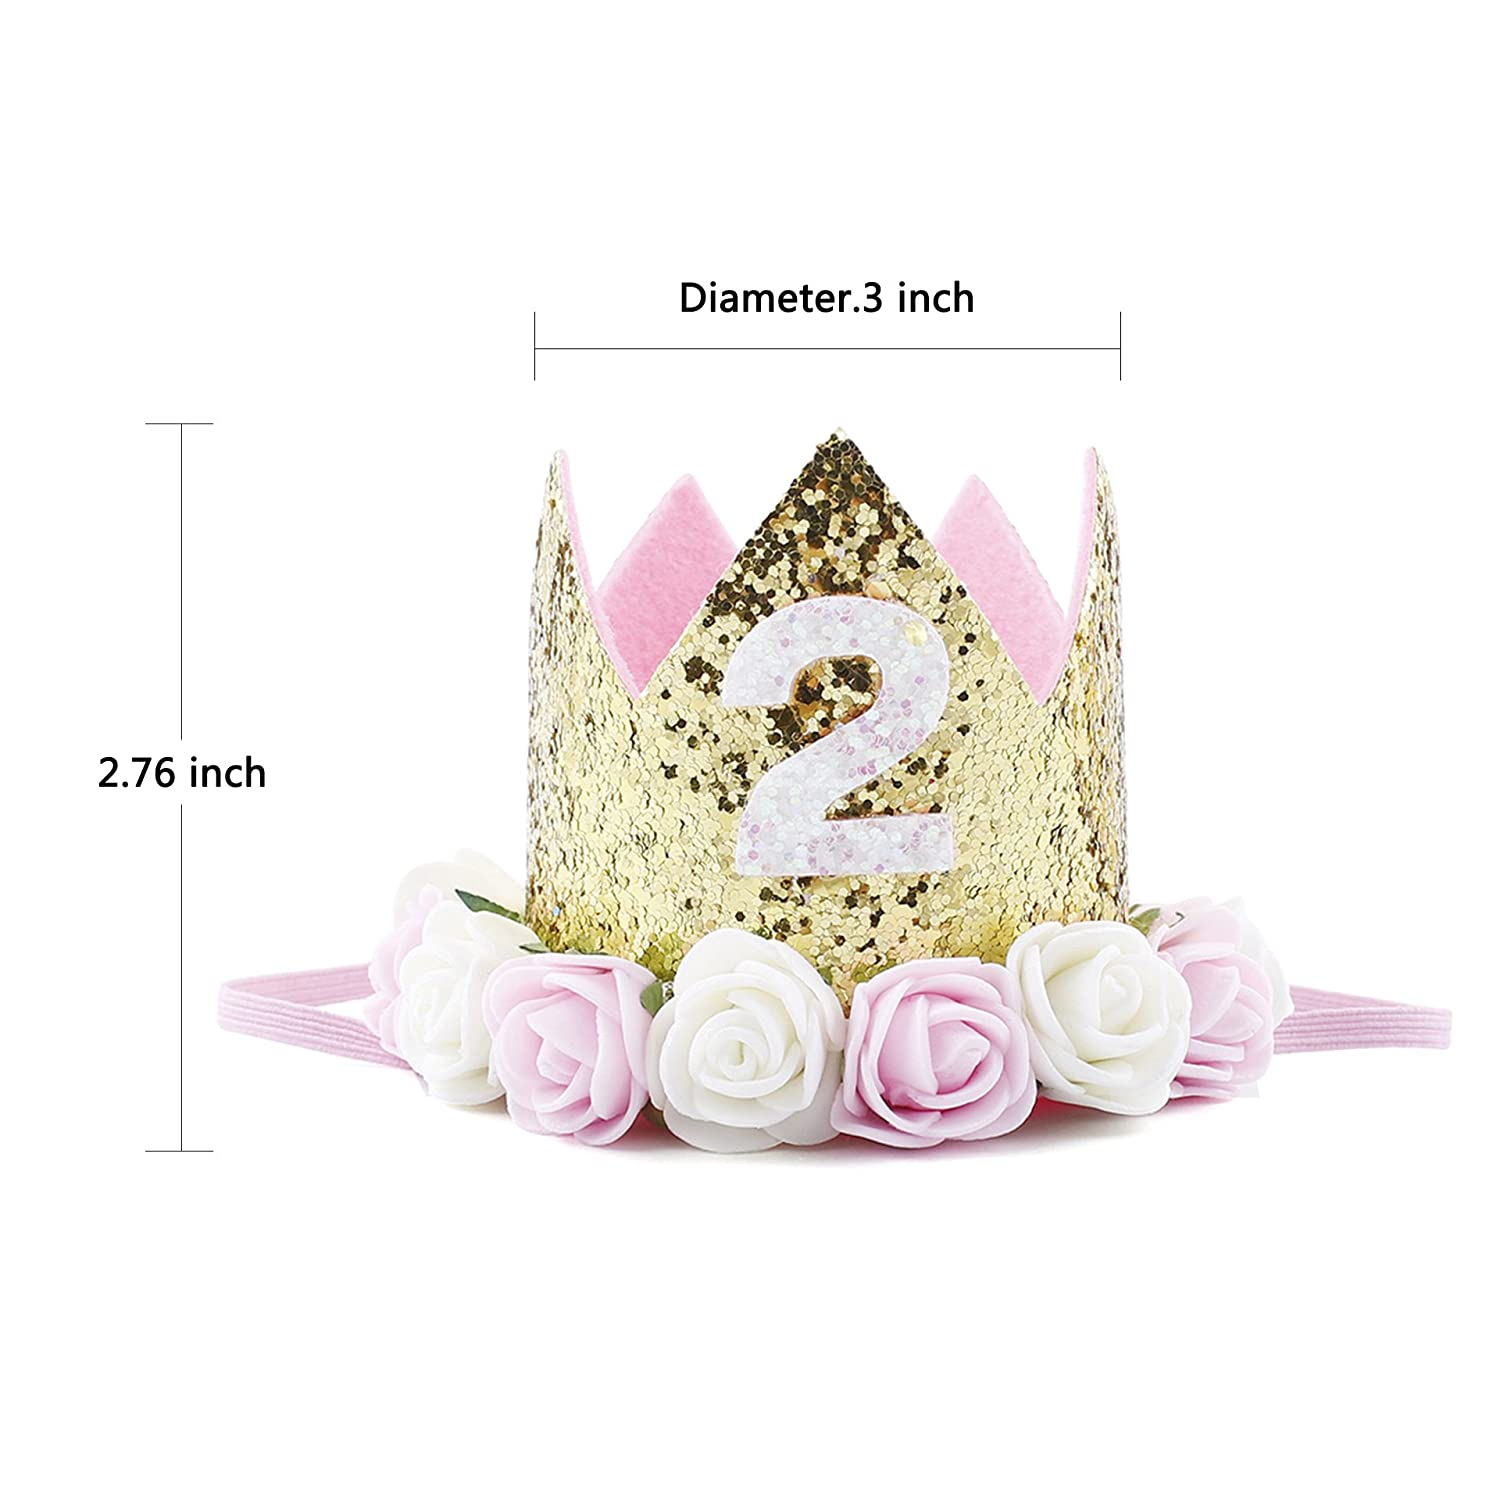 545c18efee4 Amazon.com   Baby Princess Tiara Crown Baby Girls First Birthday Hat  Sparkle Rose Flower Crown Birthday Headband Hair Accessories for Baby  Shower 1st 2nd ...